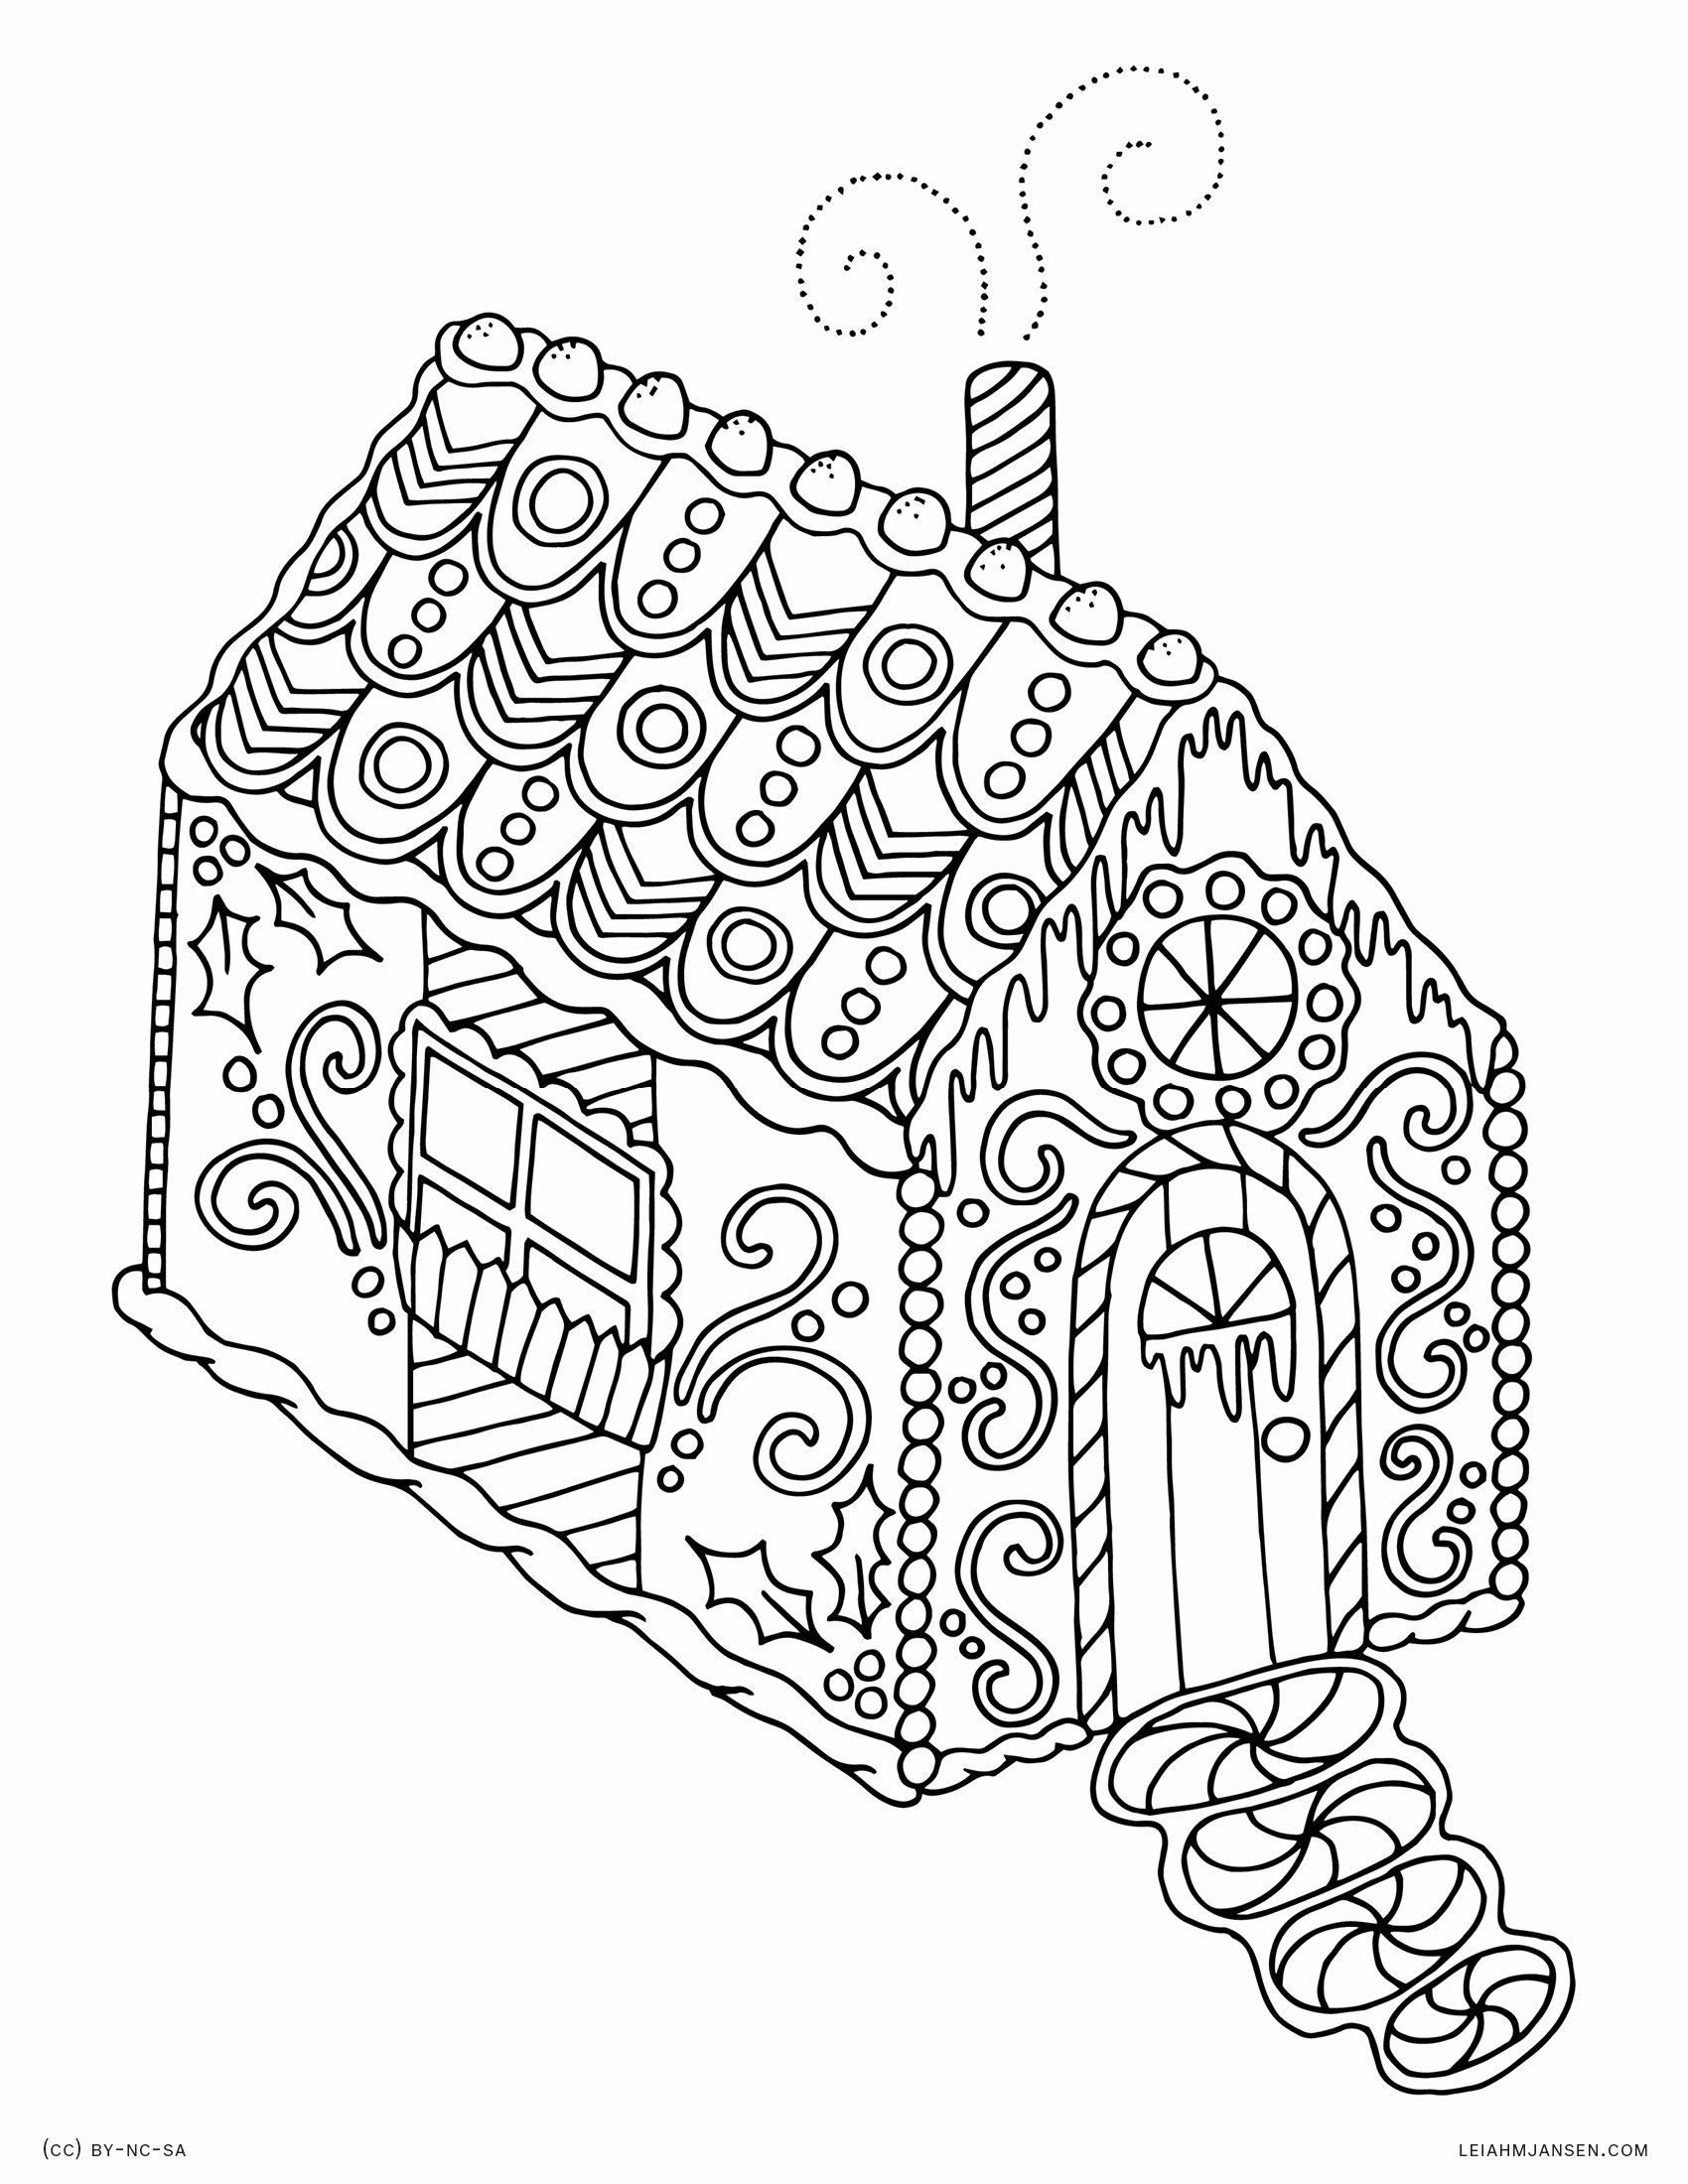 Coloring Pages For Holidays Lovely Holiday Coloring Pages Printable Christmas Coloring Pages Mandala Coloring Pages Holiday Coloring Book